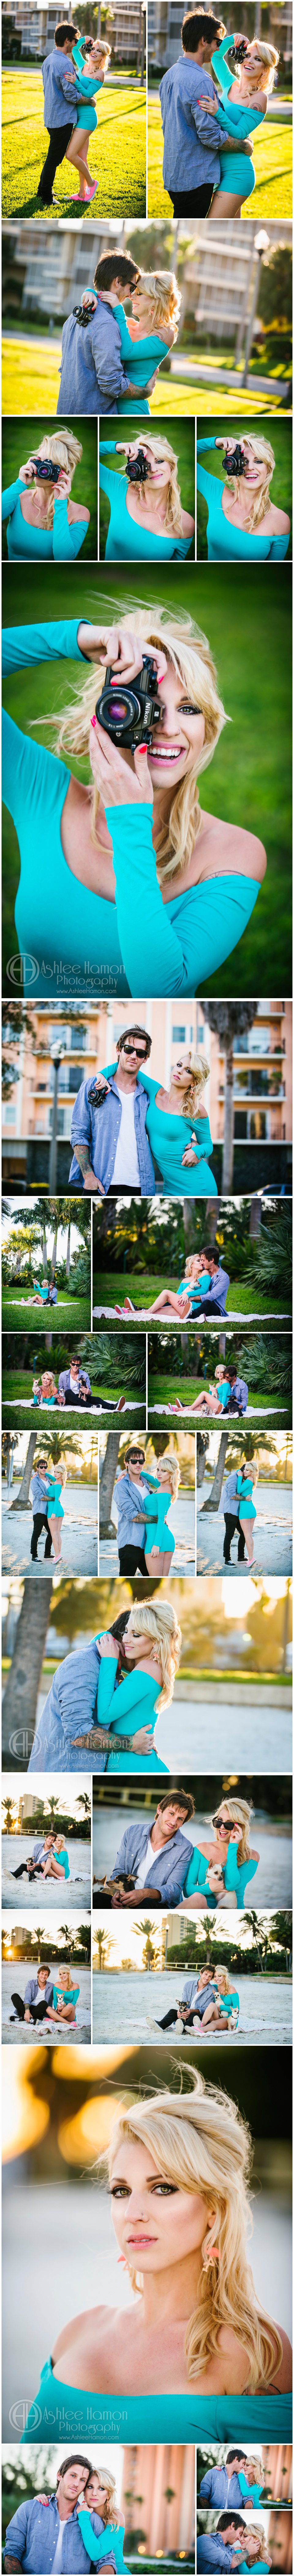 Colorful St. Pete Lifestyle Photo Shoot